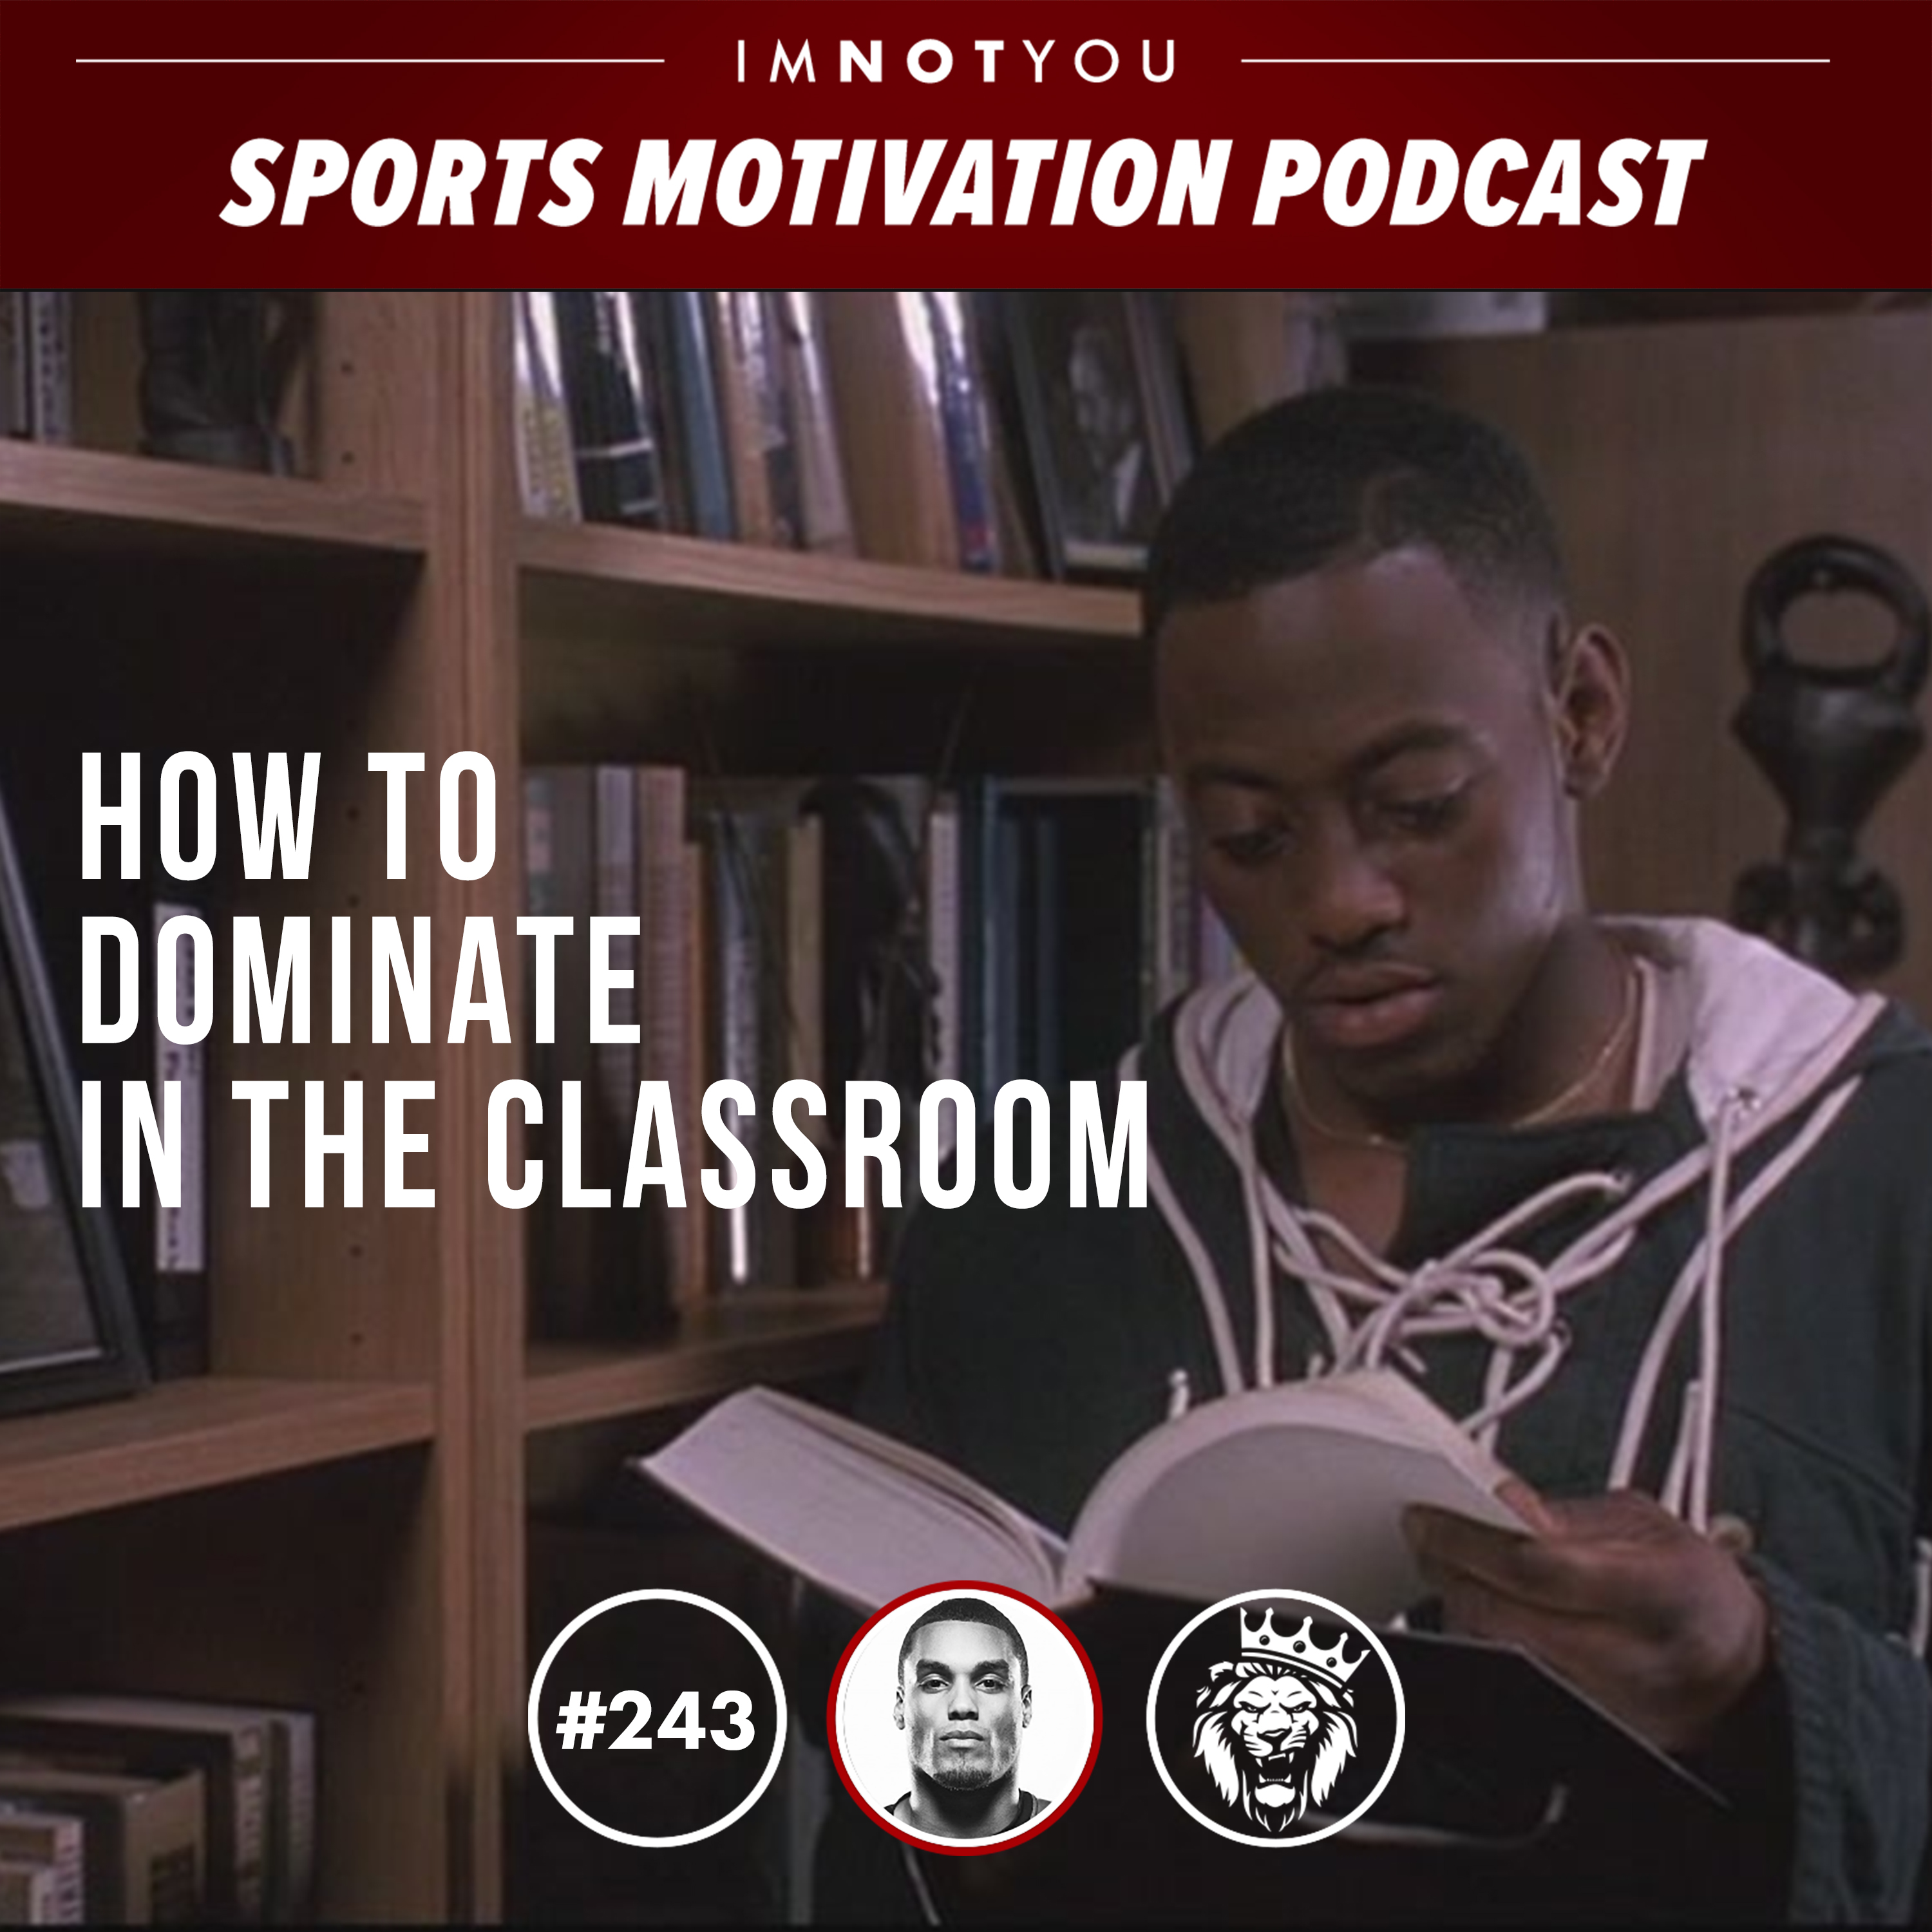 243: How to Dominate in the Classroom